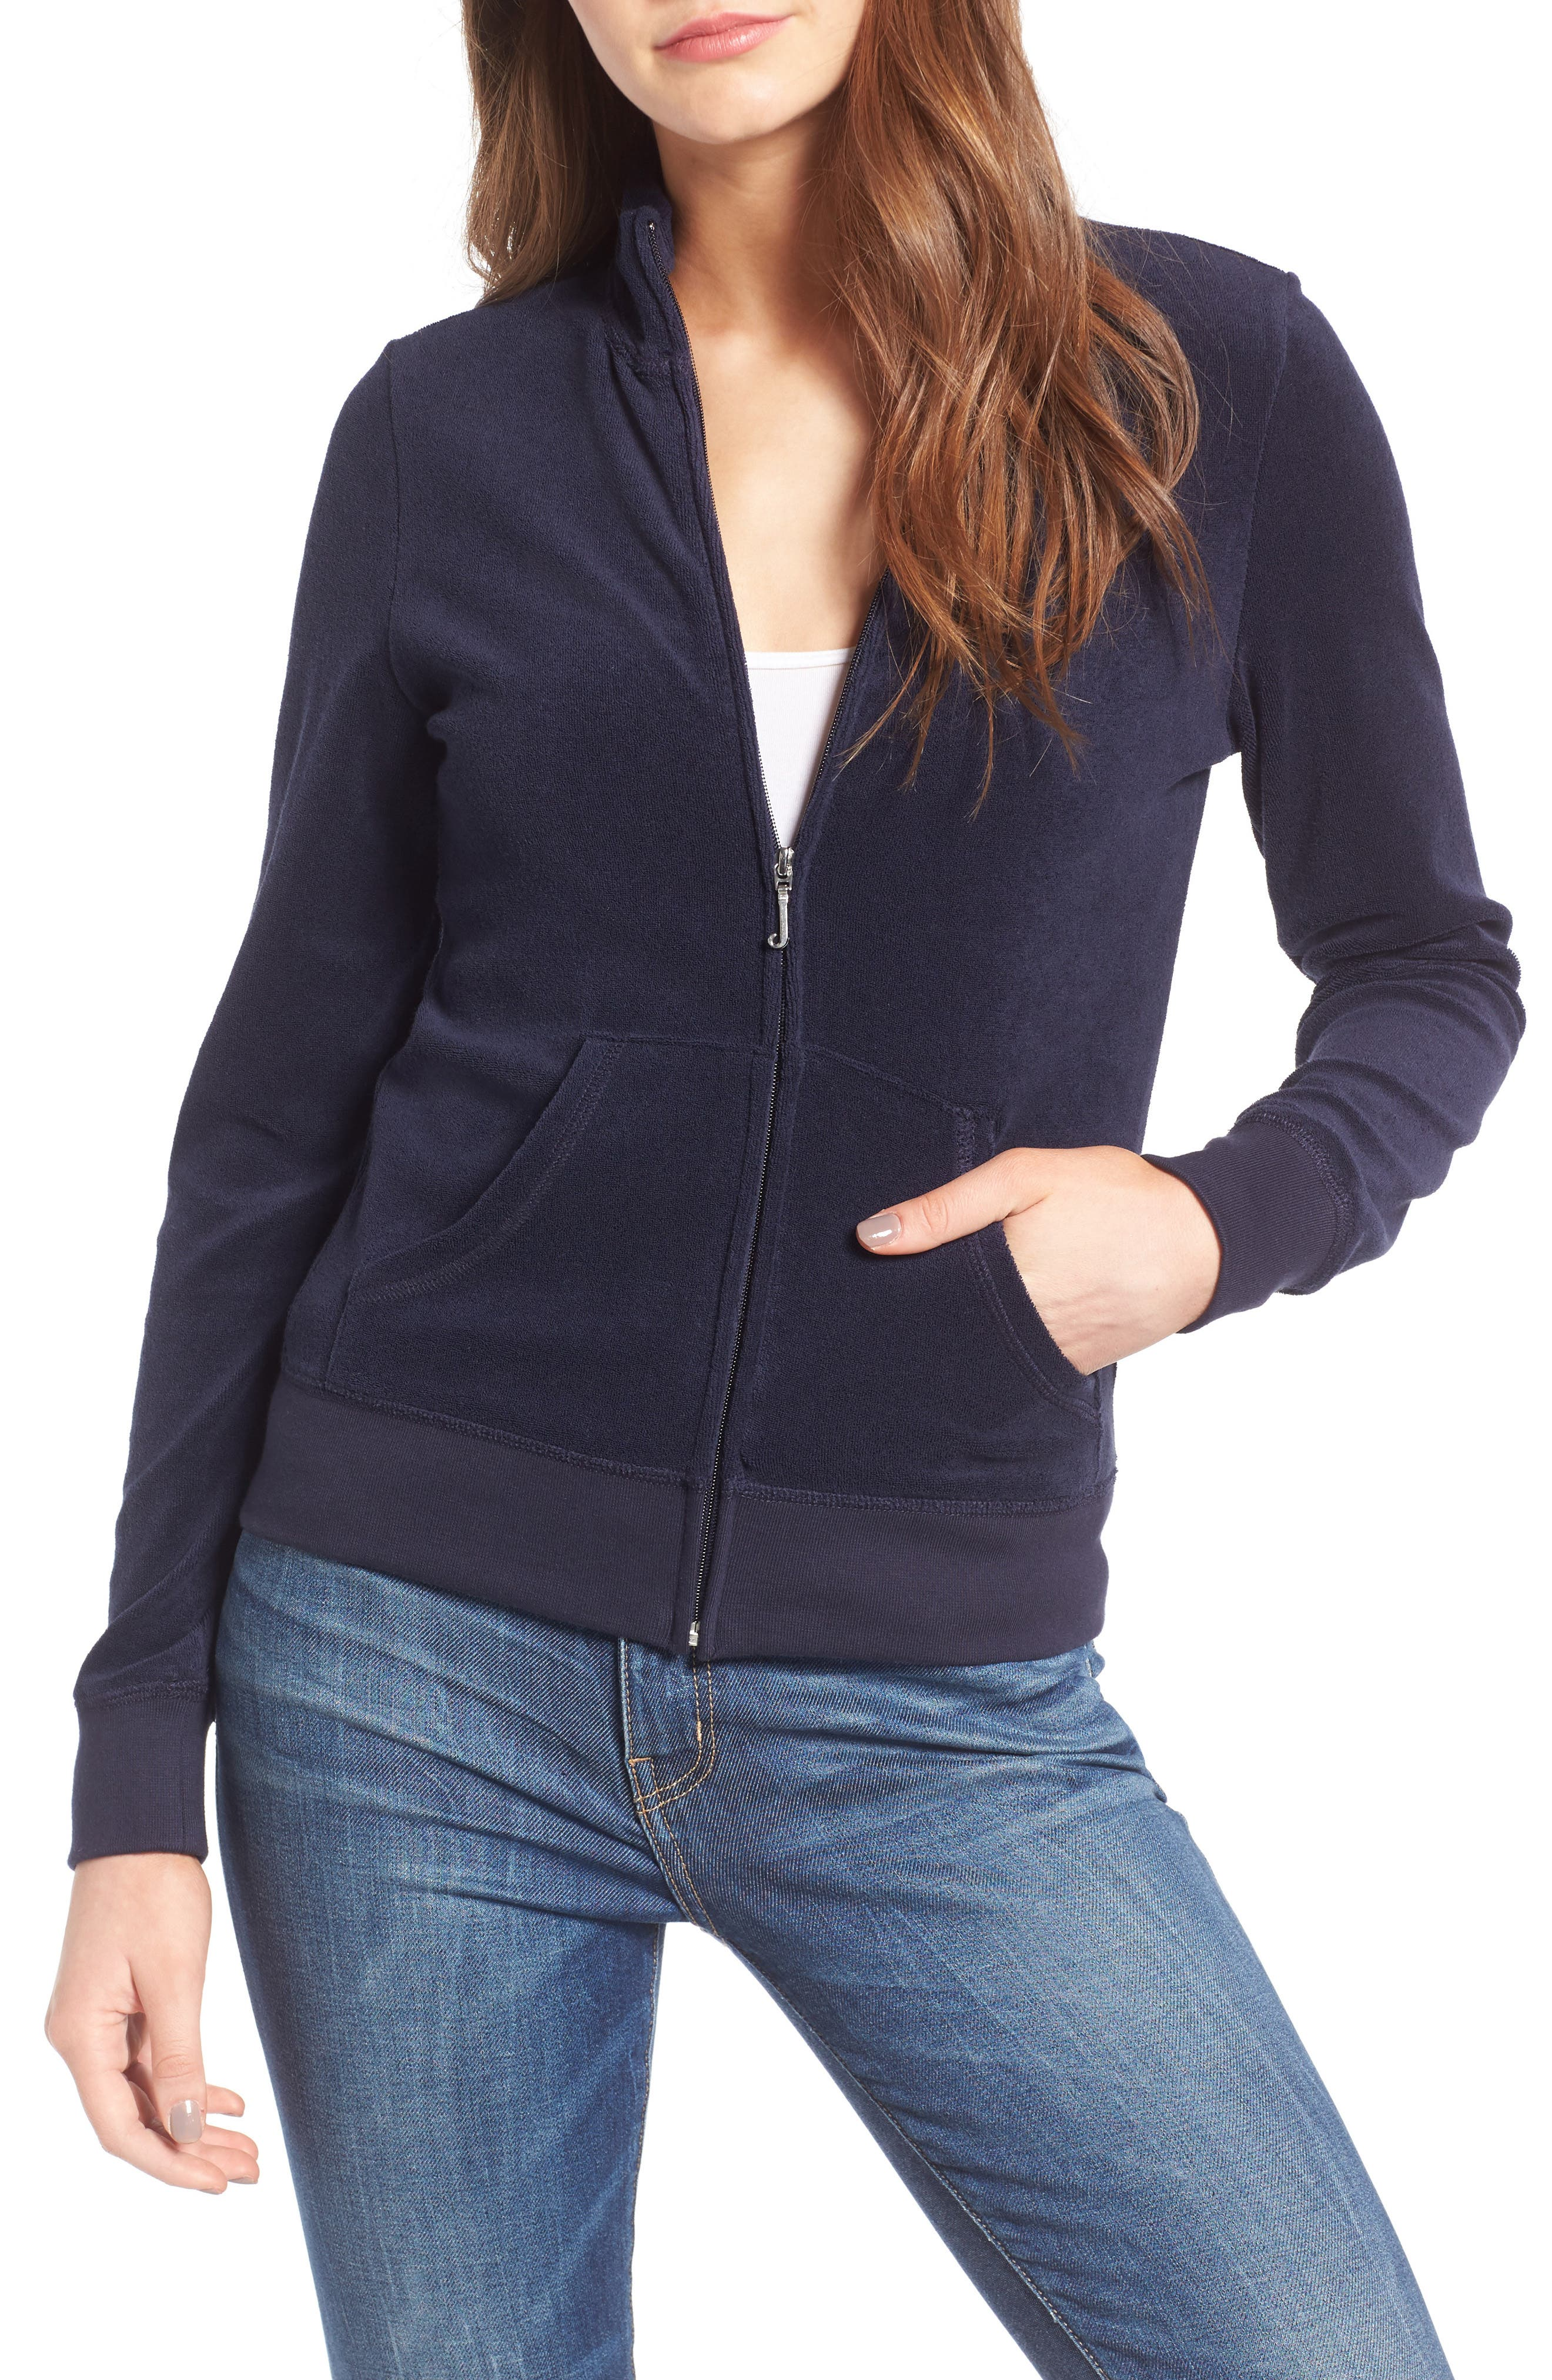 Juicy Couture Fairfax Terry Track Jacket